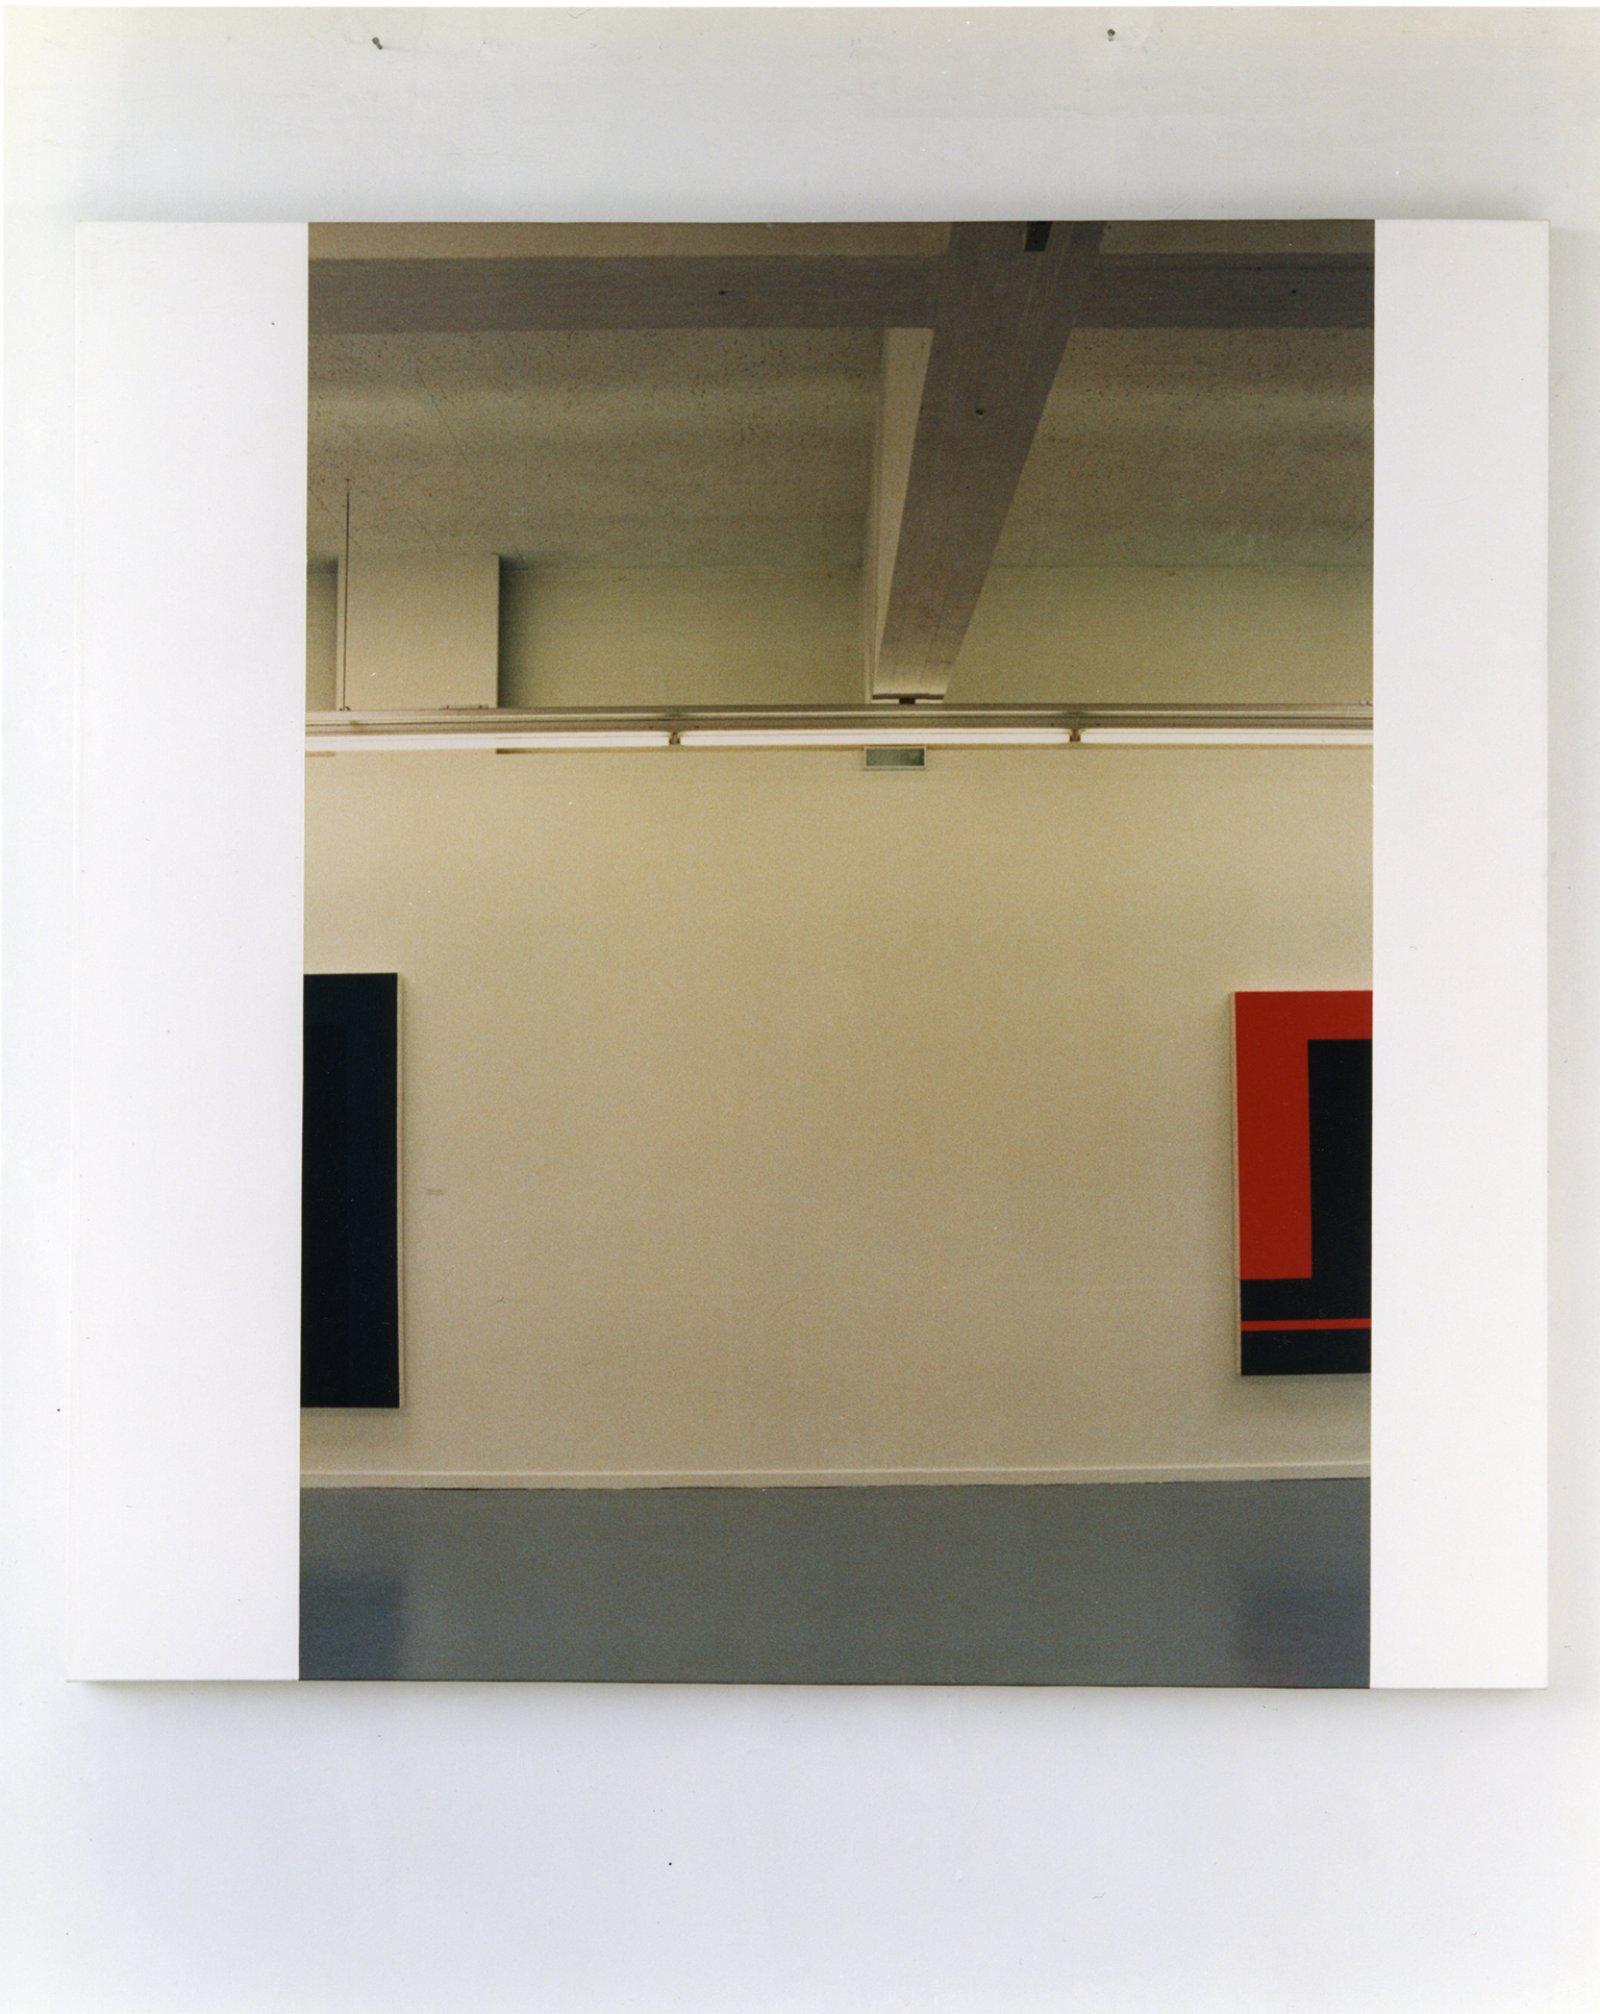 Ian Wallace,In The Museum (Peter Halley Series III), 1989, photolaminate and acrylic on canvas, 60 x 60 in. (153 x 153 cm)